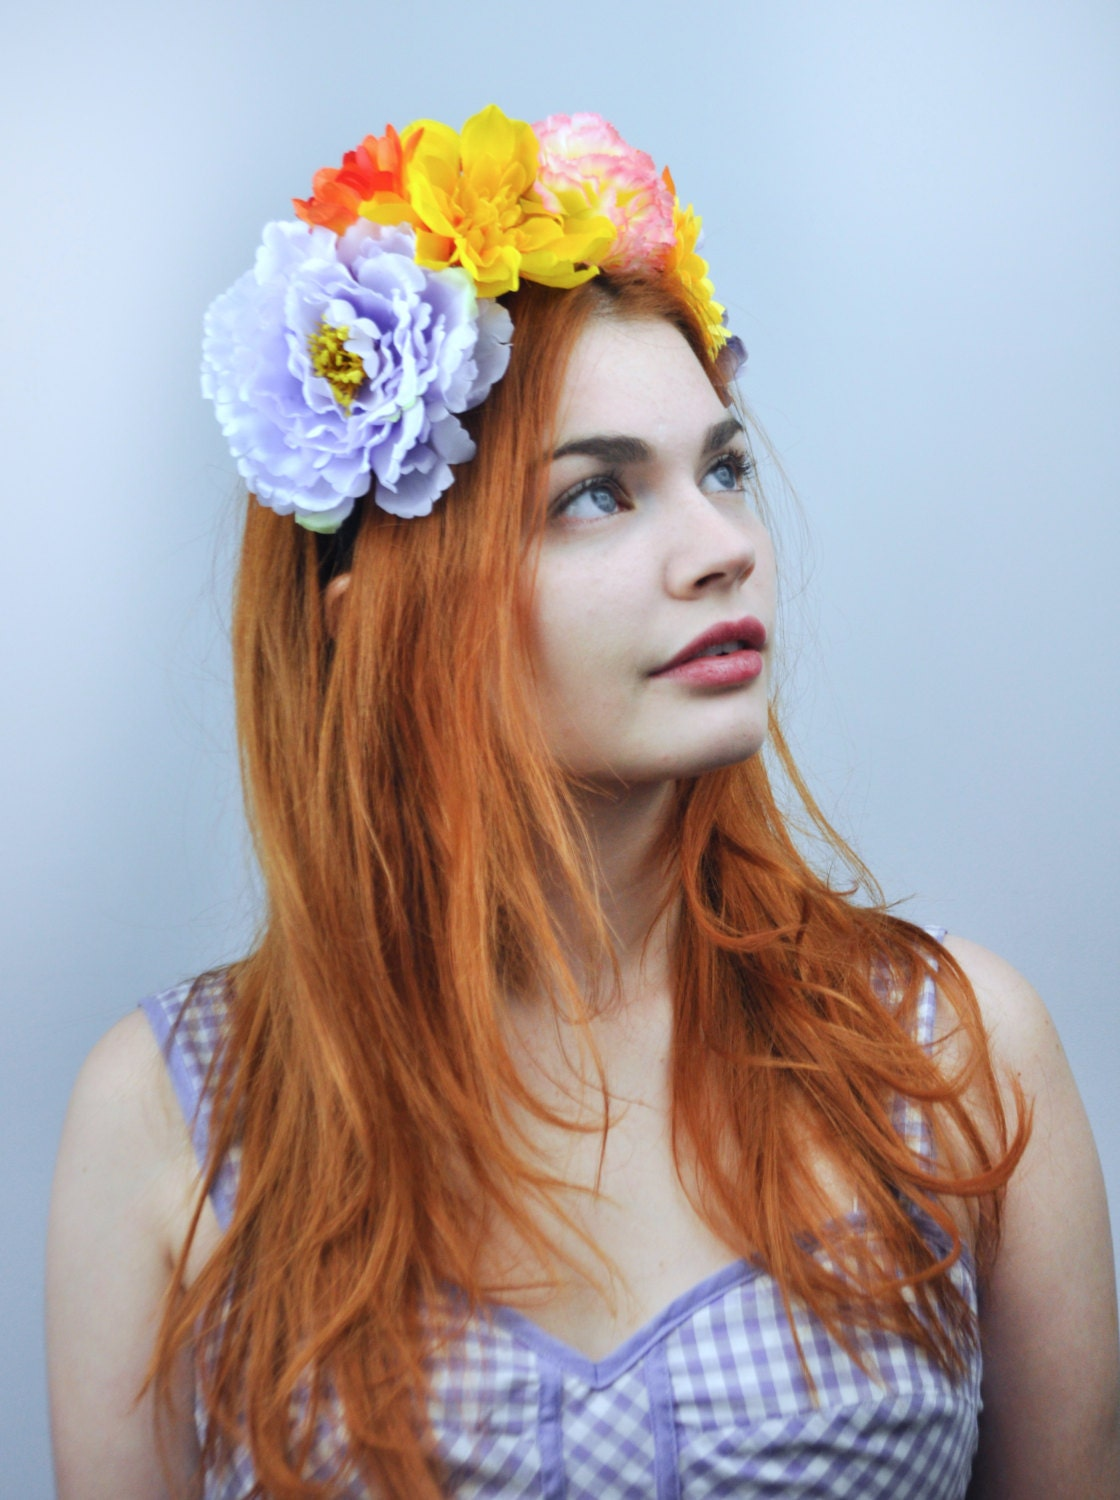 Sale Dramatic Festival Flower Crown Headpiece In Lilac And Yellow